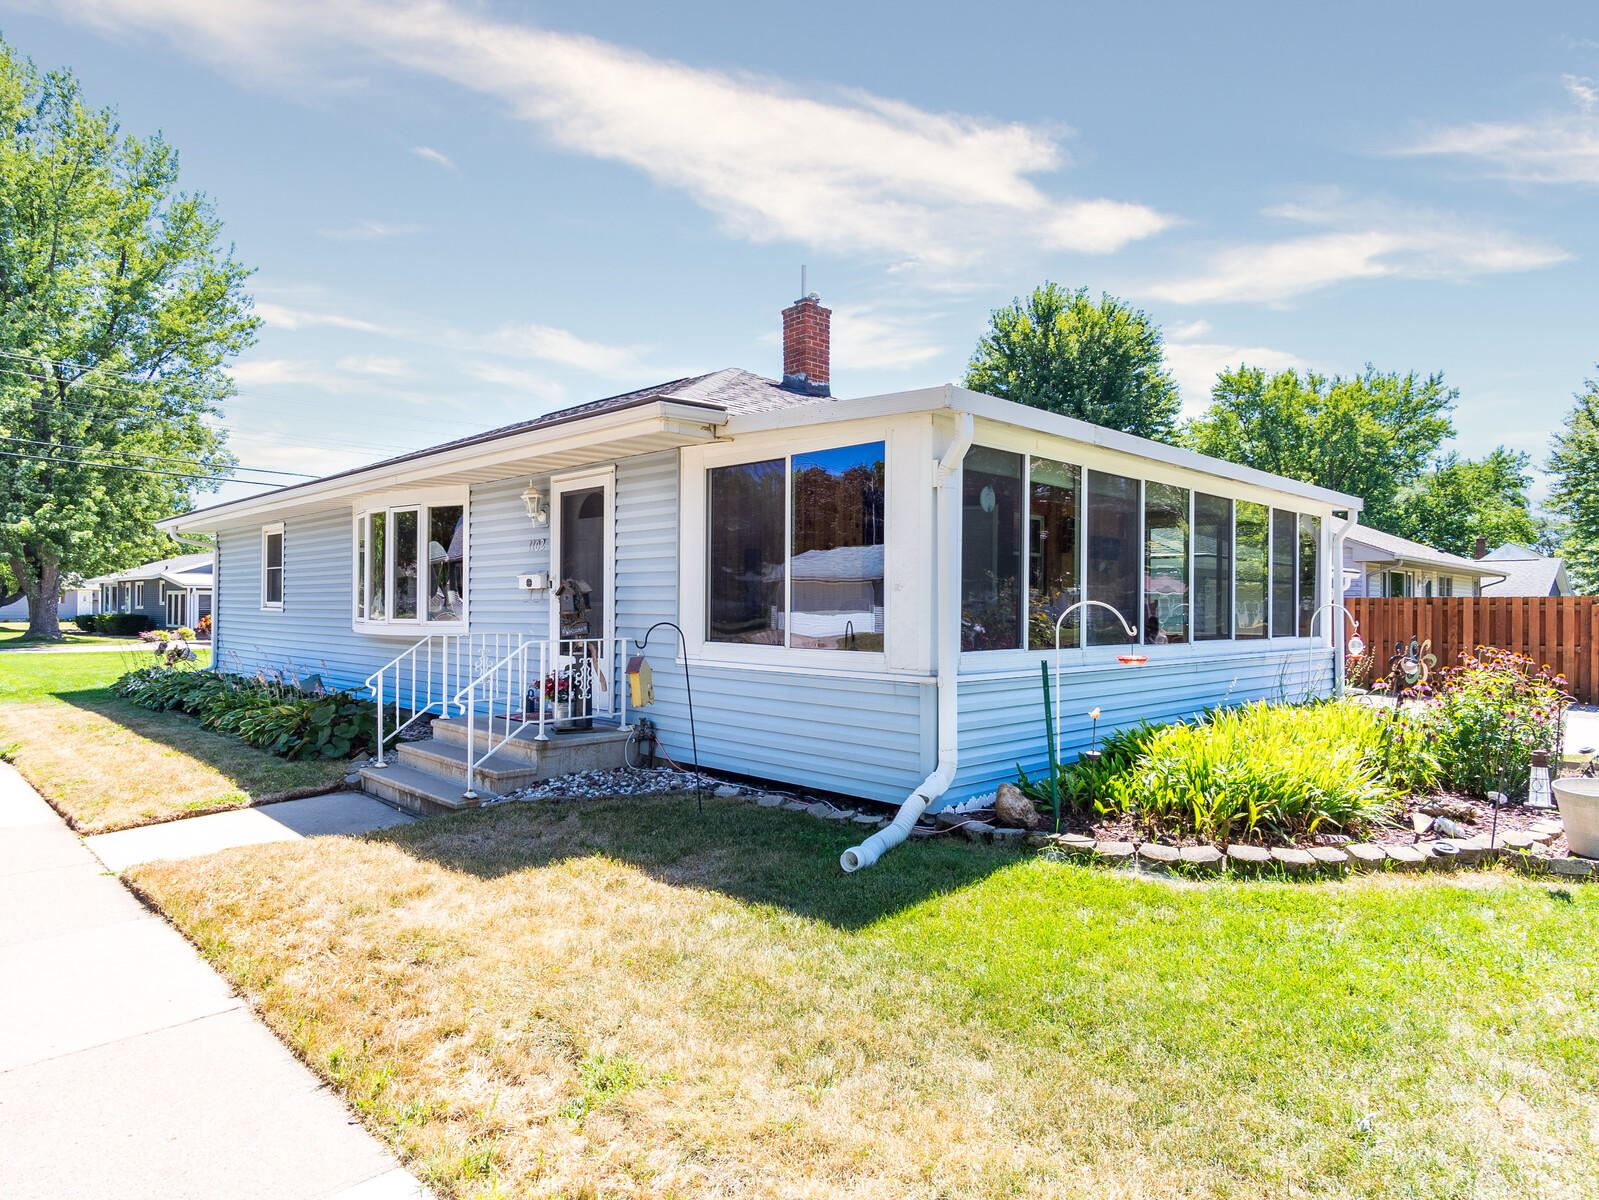 1102 Lake ST, Onalaska, WI 54650 - MLS#: 1703972